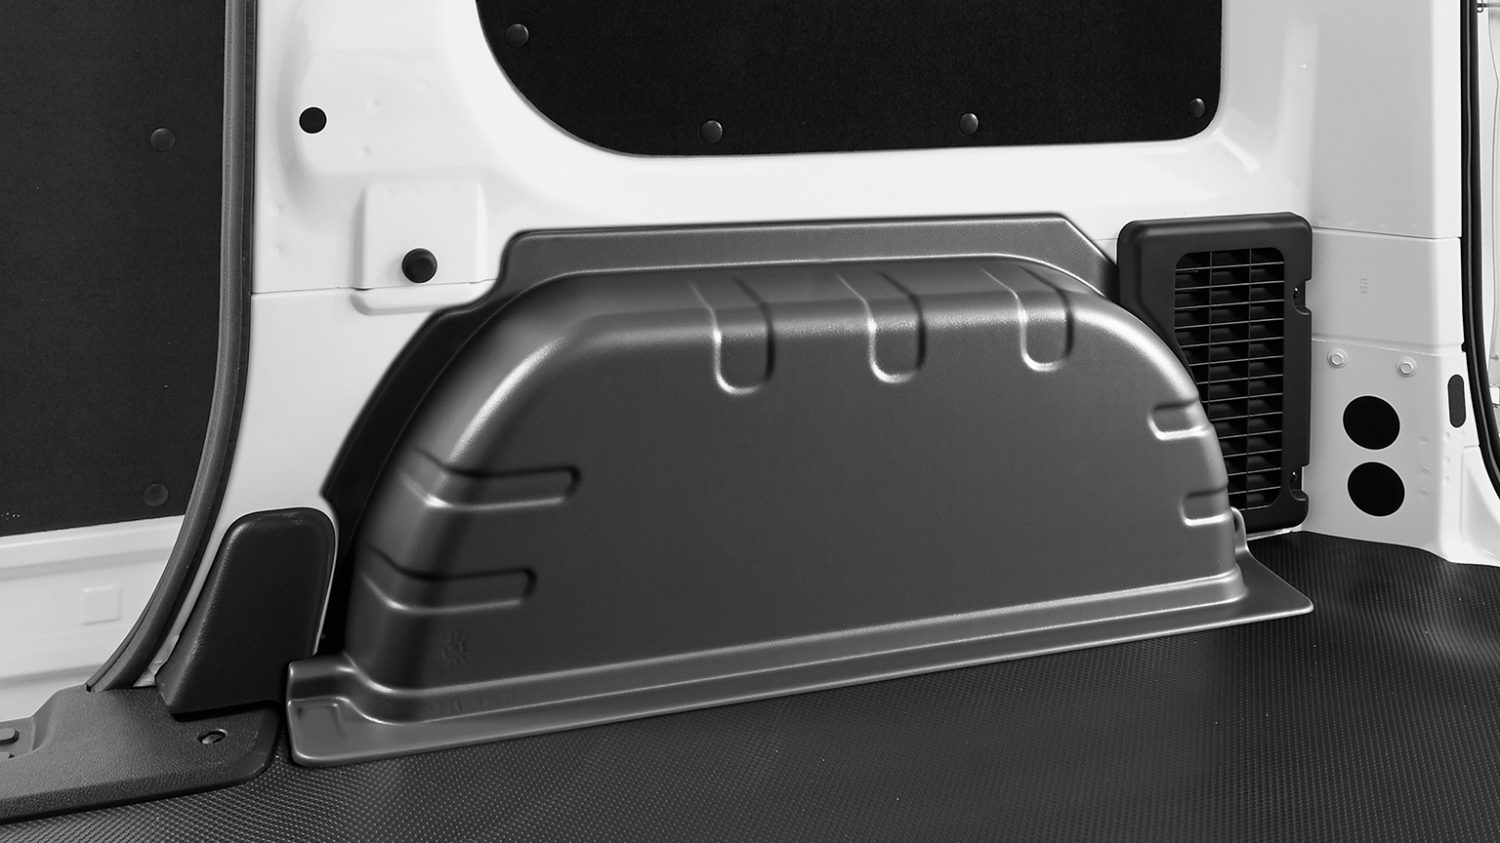 Nissan NV200 - Interior - Wheel arch plastic protection